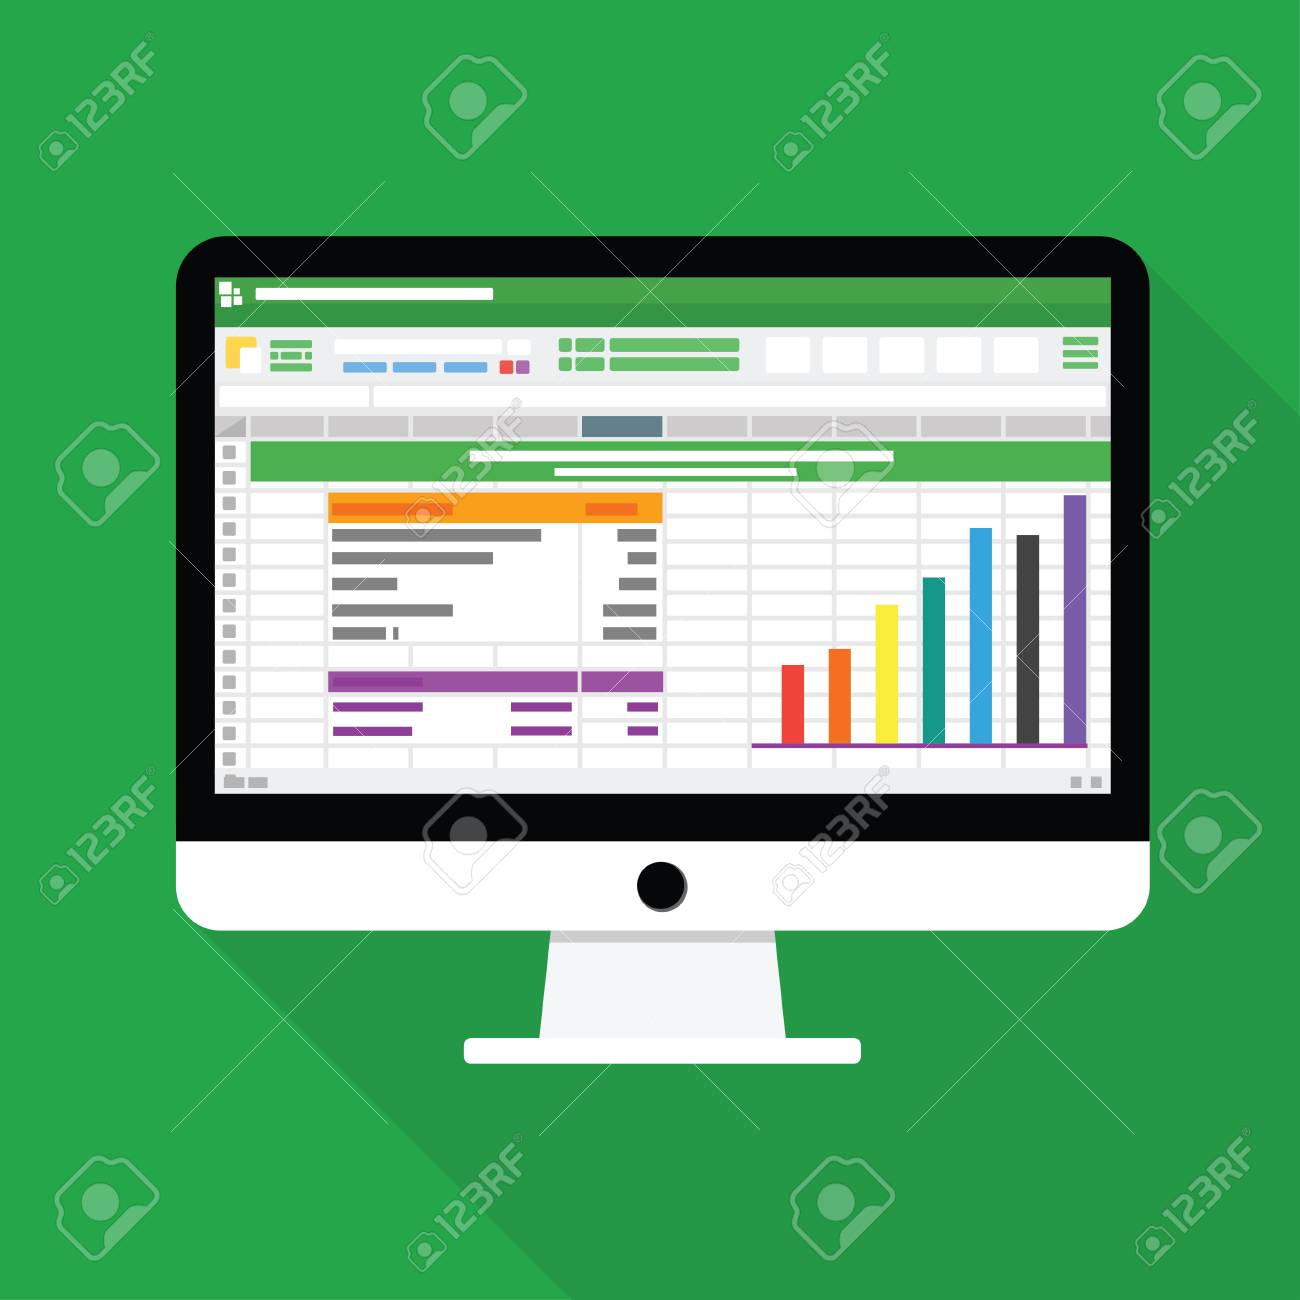 Spreadsheet Computer flat icon. Financial accounting report concept vector illustration - 113208445